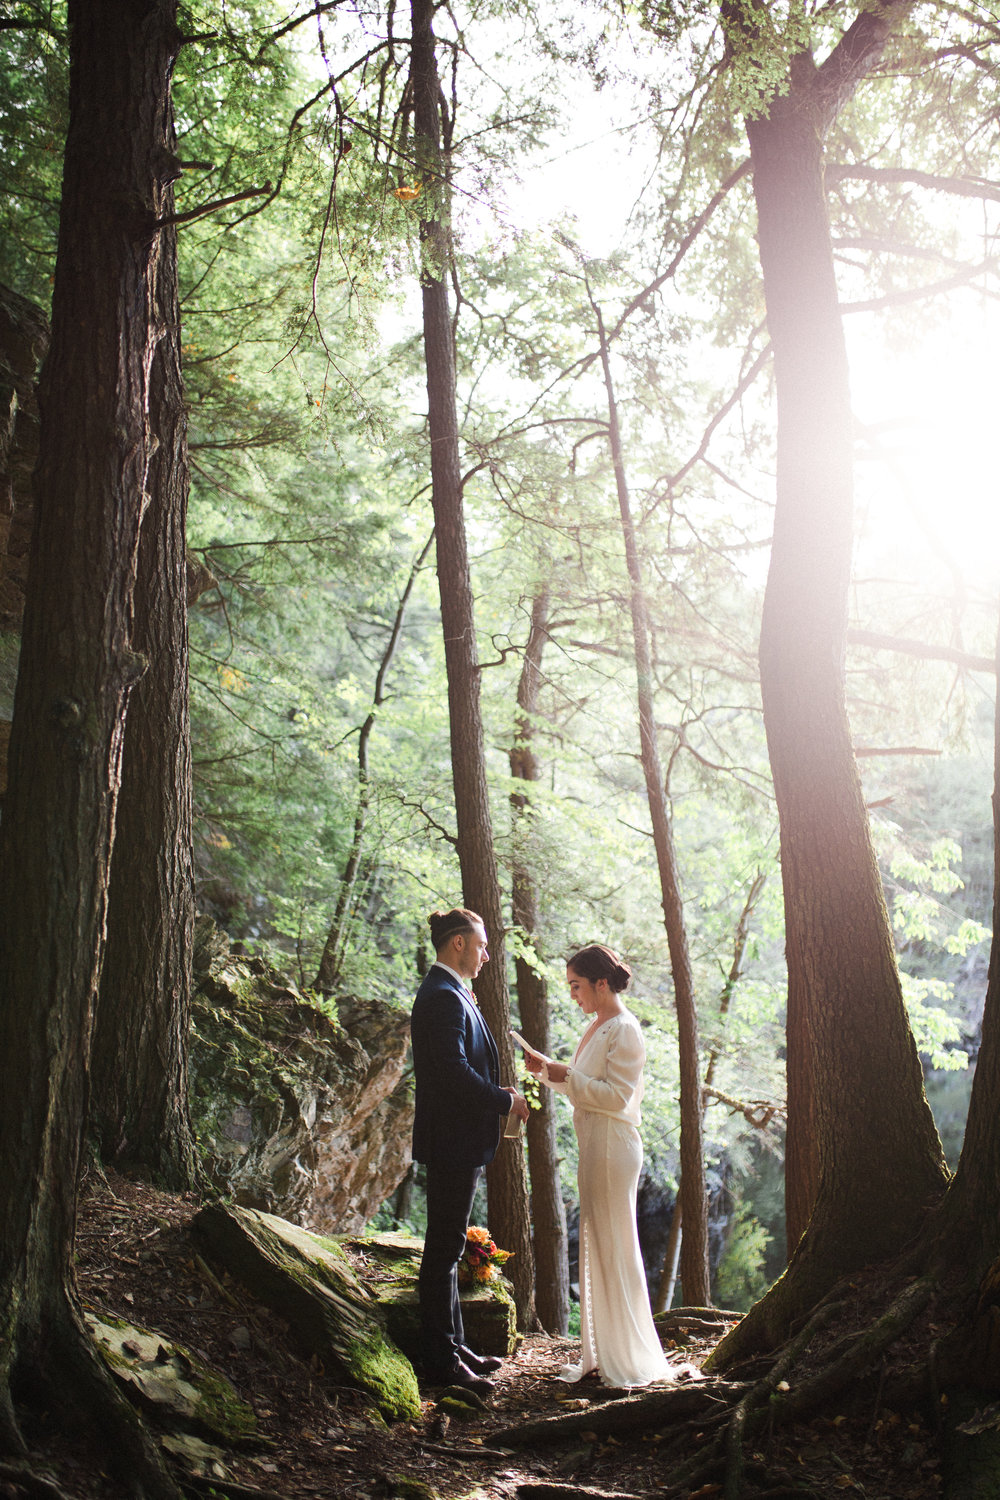 Massachusetts Woods Elopement_meg haley photographs_004.jpg